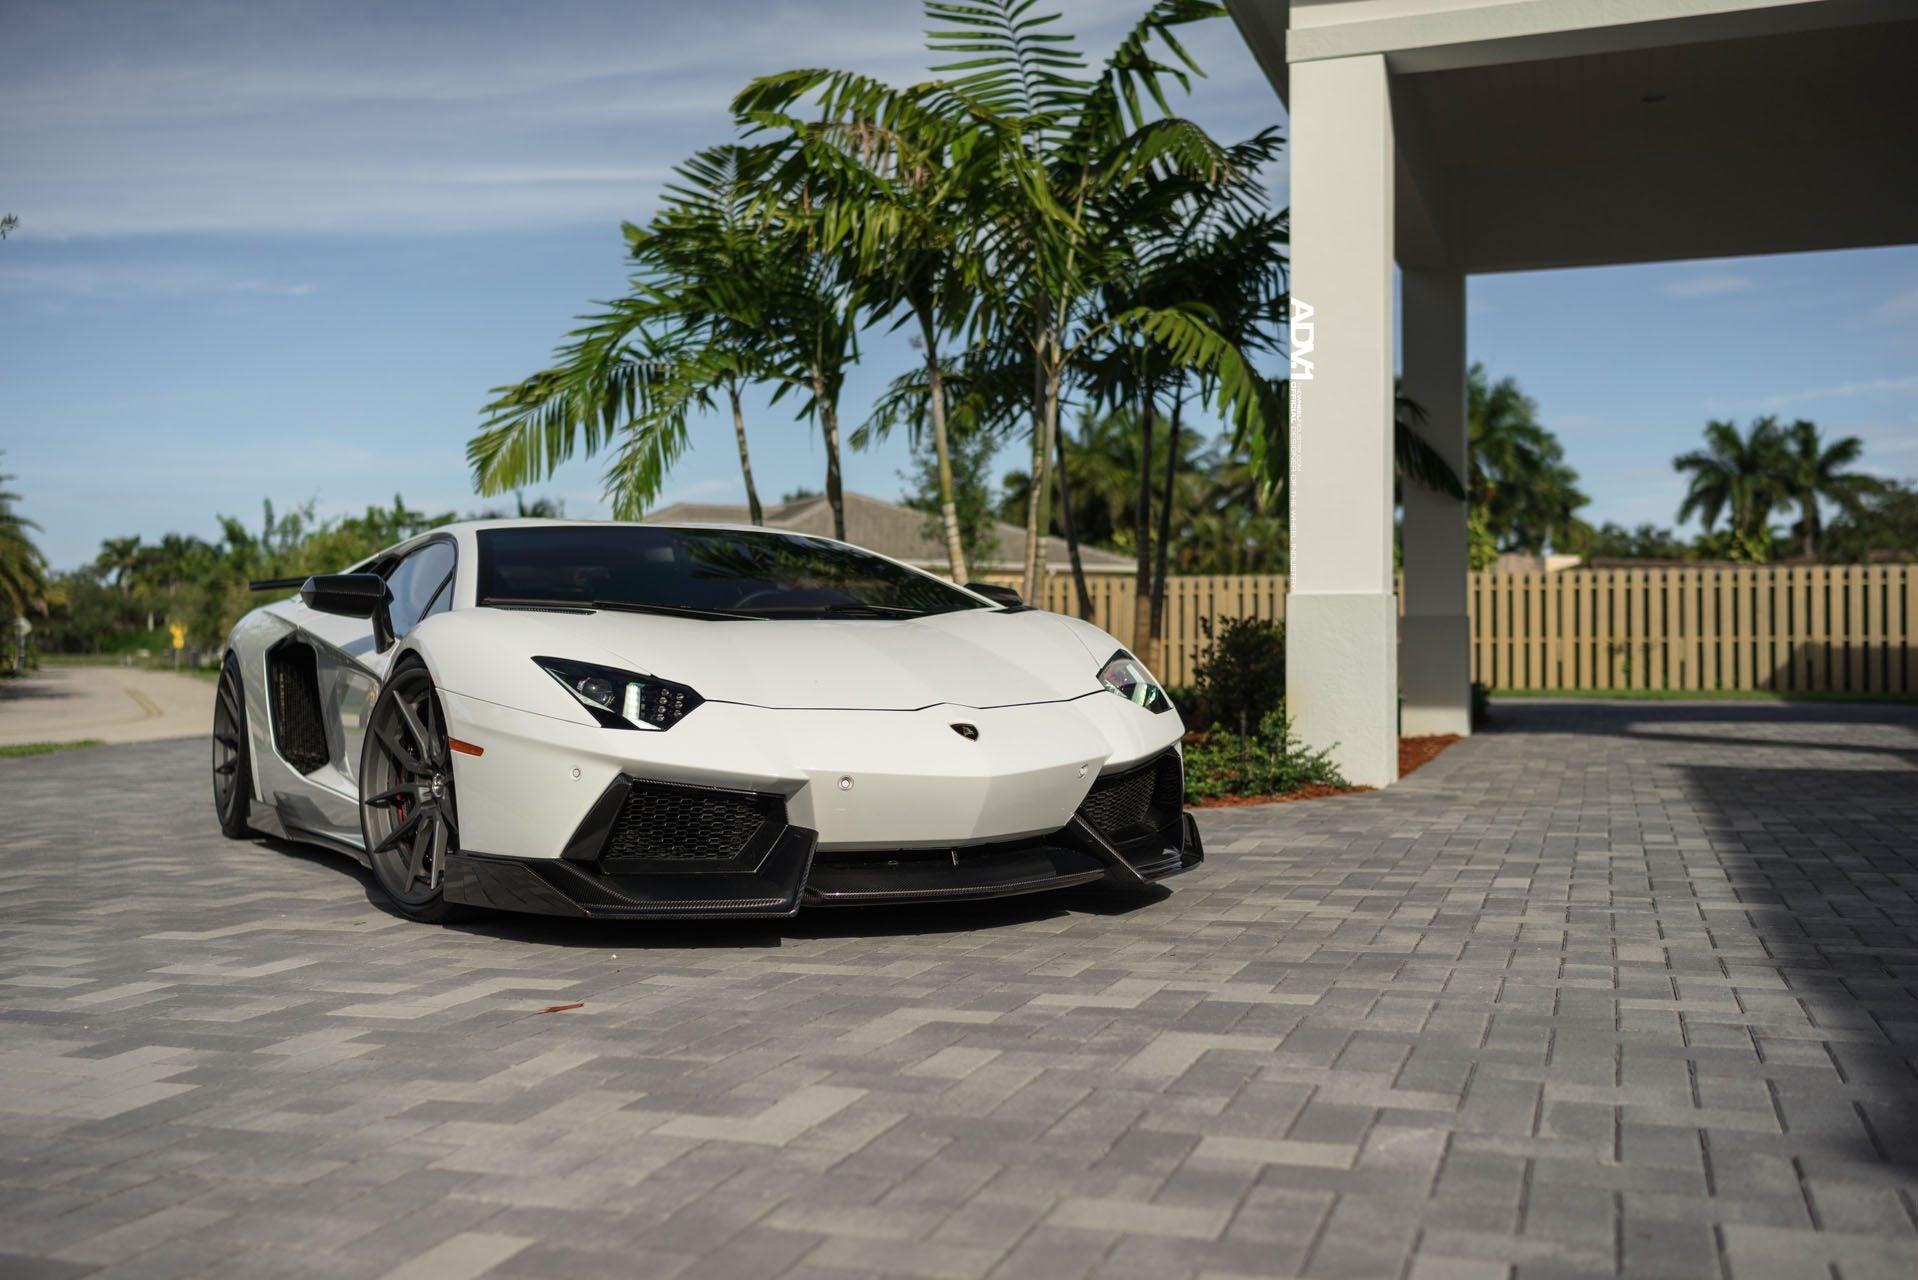 LAMBORGHINI AVENTADOR 1016 INDUSTRIES AERO KIT